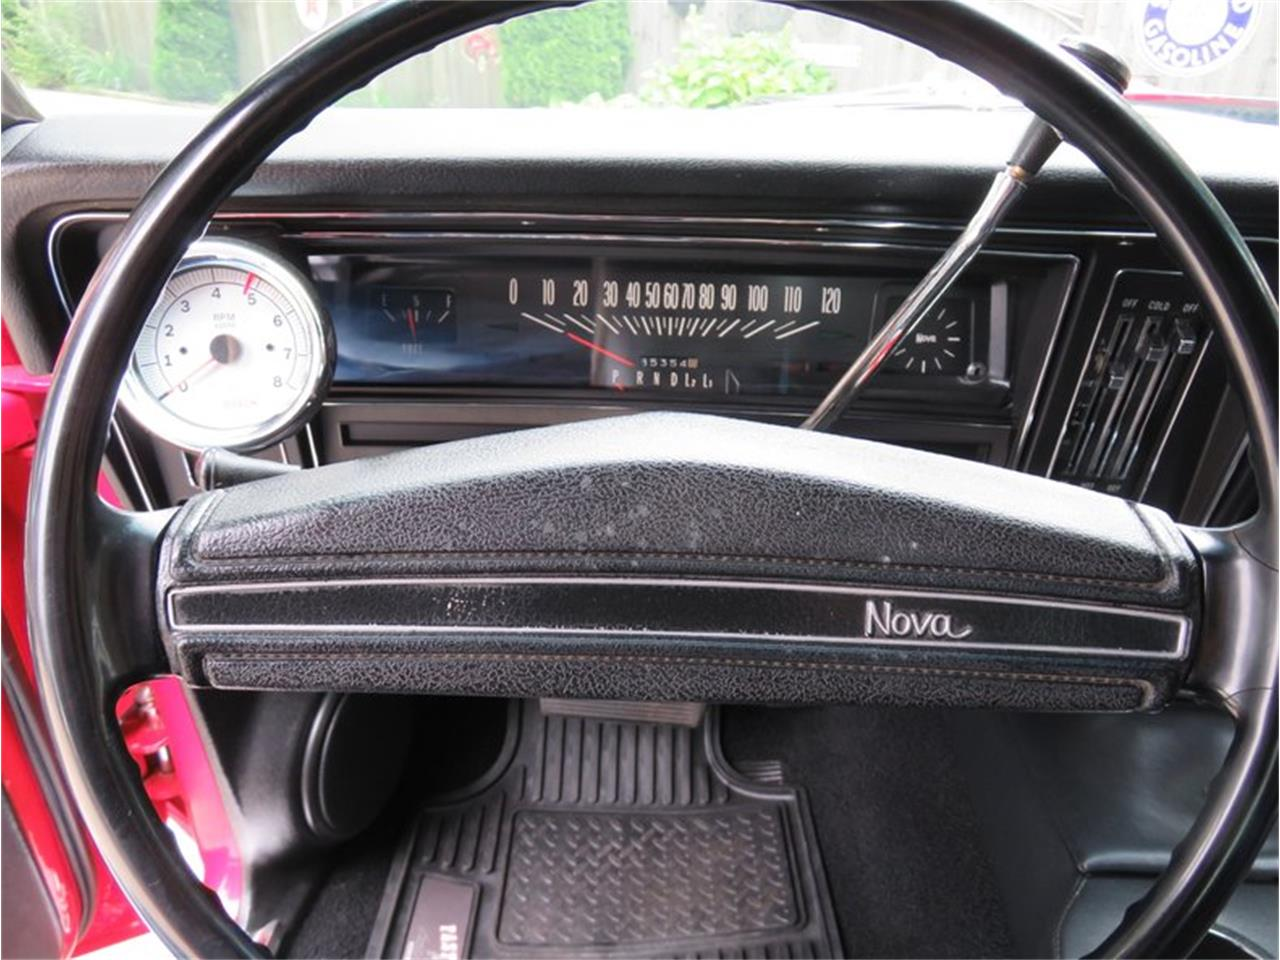 Large Picture of 1971 Nova Auction Vehicle Offered by Earlywine Auctions - PNQ5